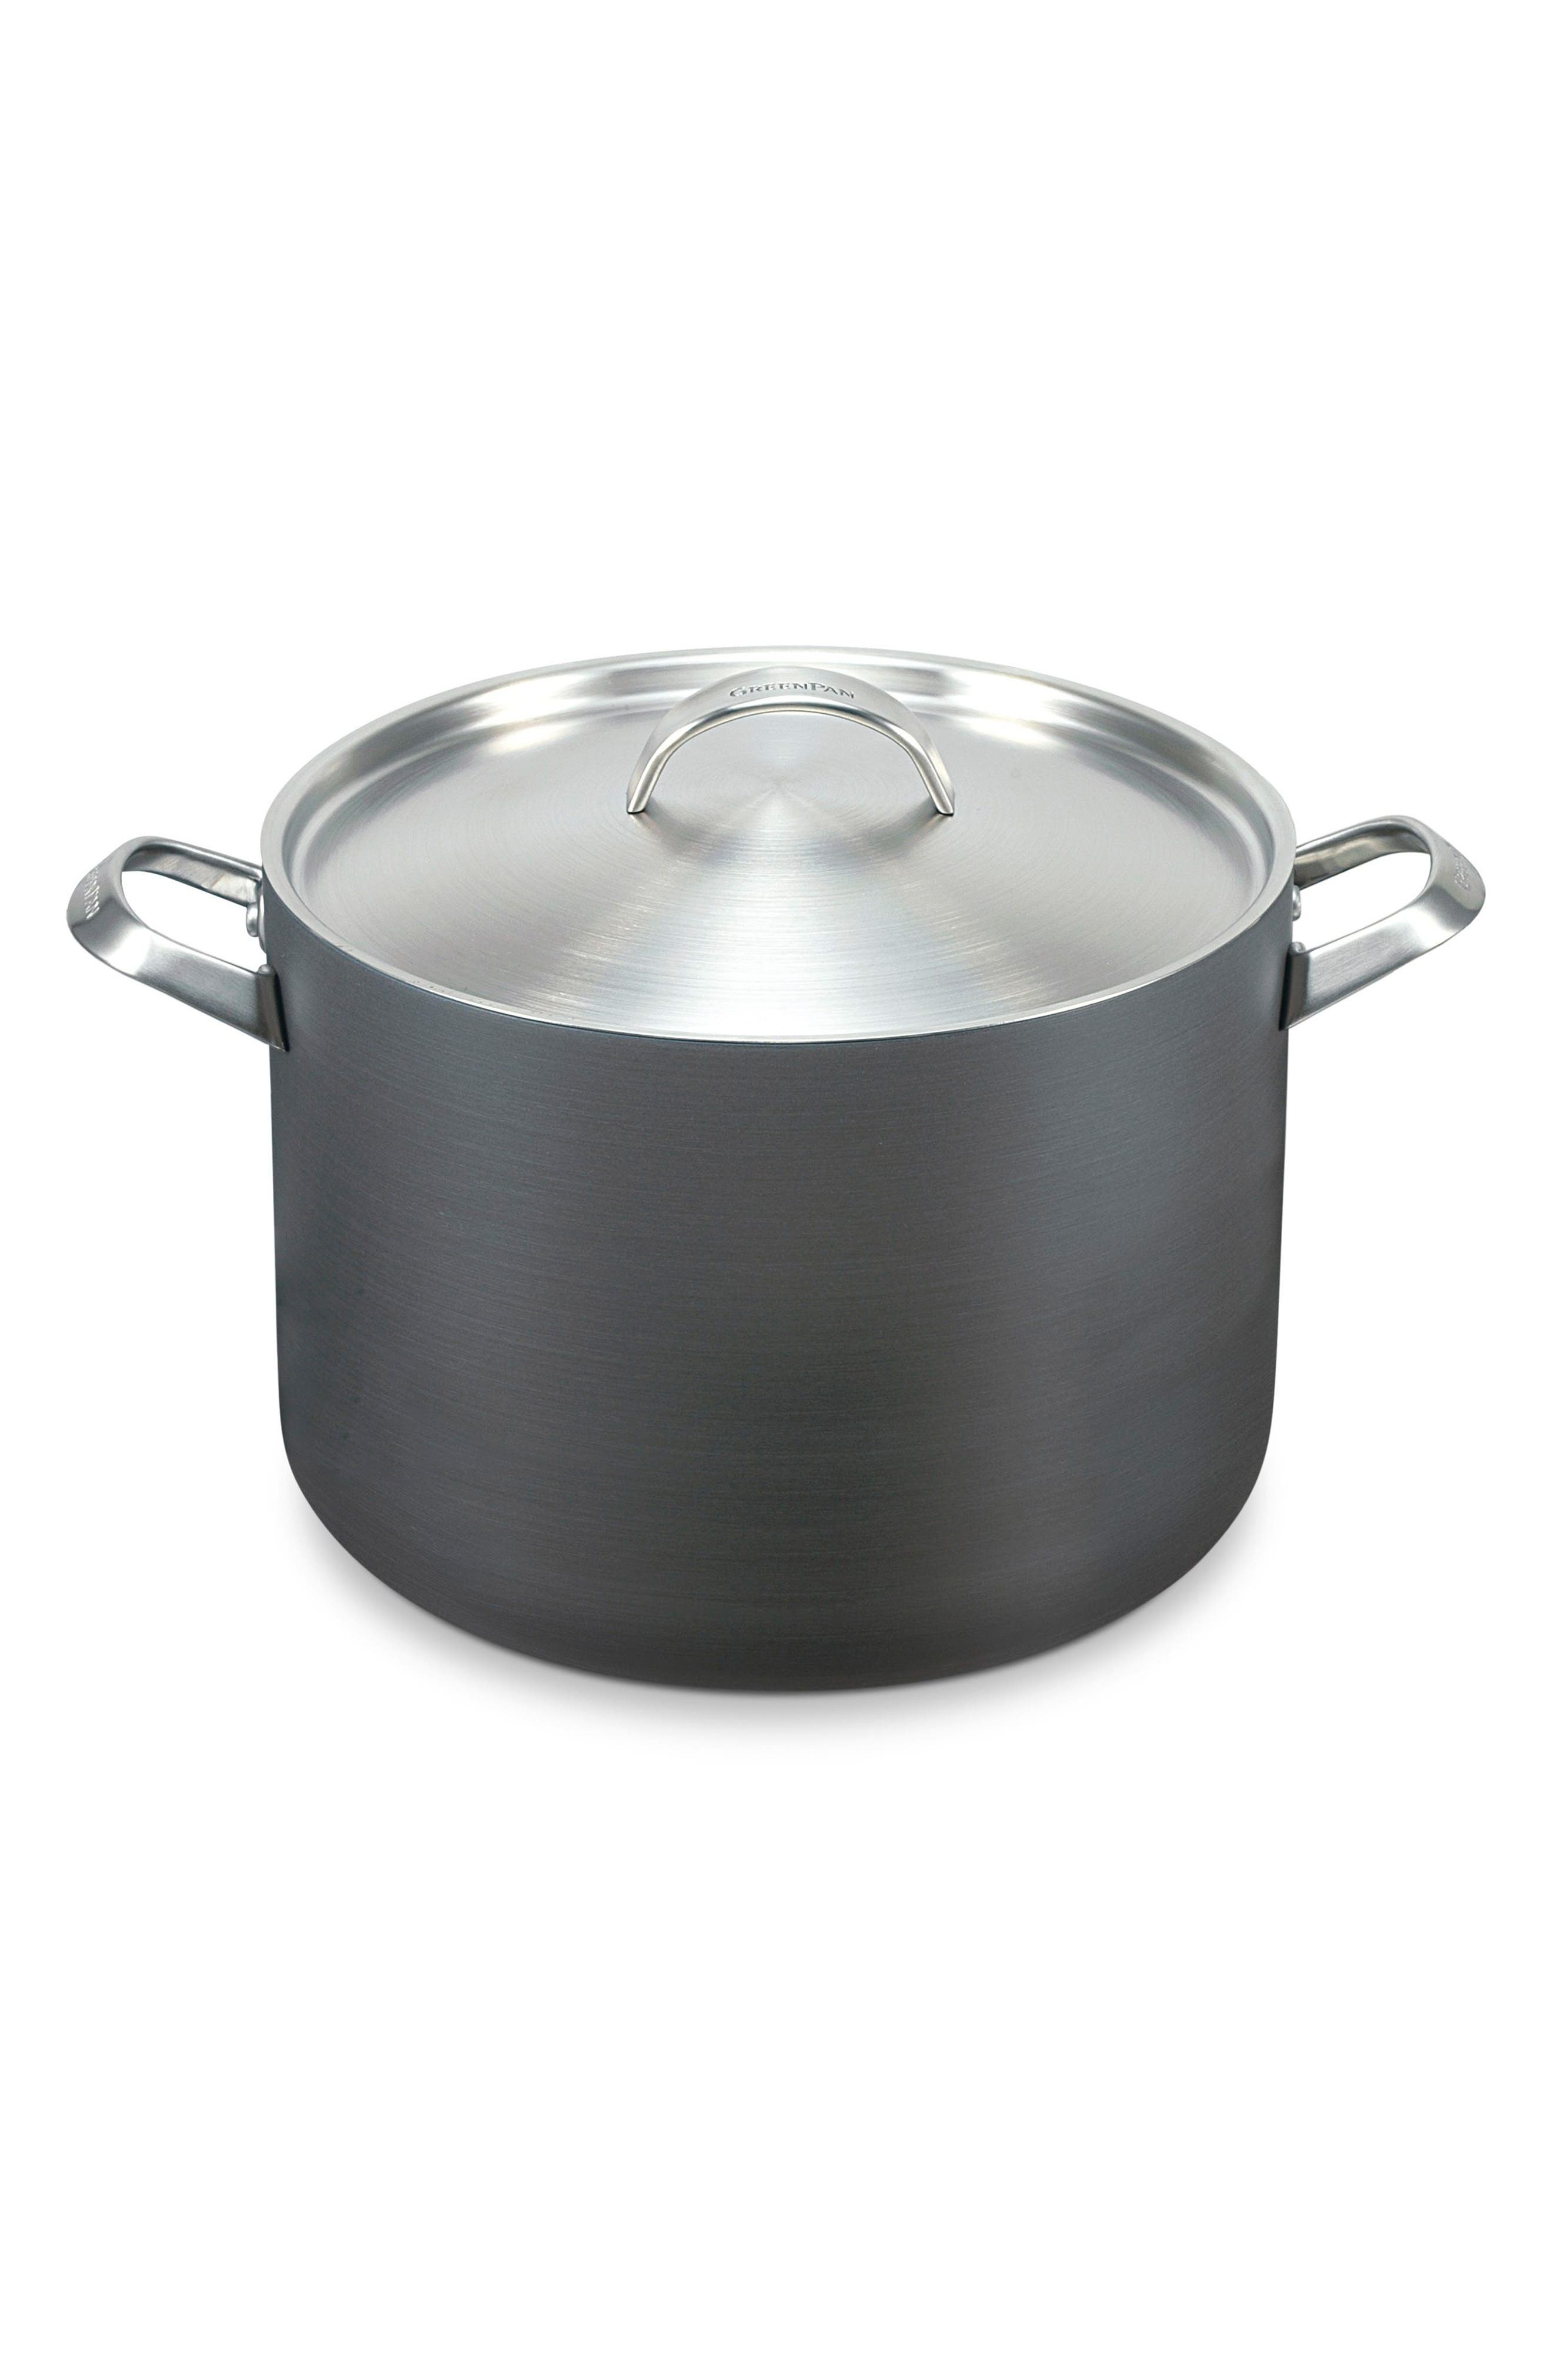 Paris 8-Quart Multilayer Stainless Steel Ceramic Nonstick Stockpot with Lid,                         Main,                         color, GREY